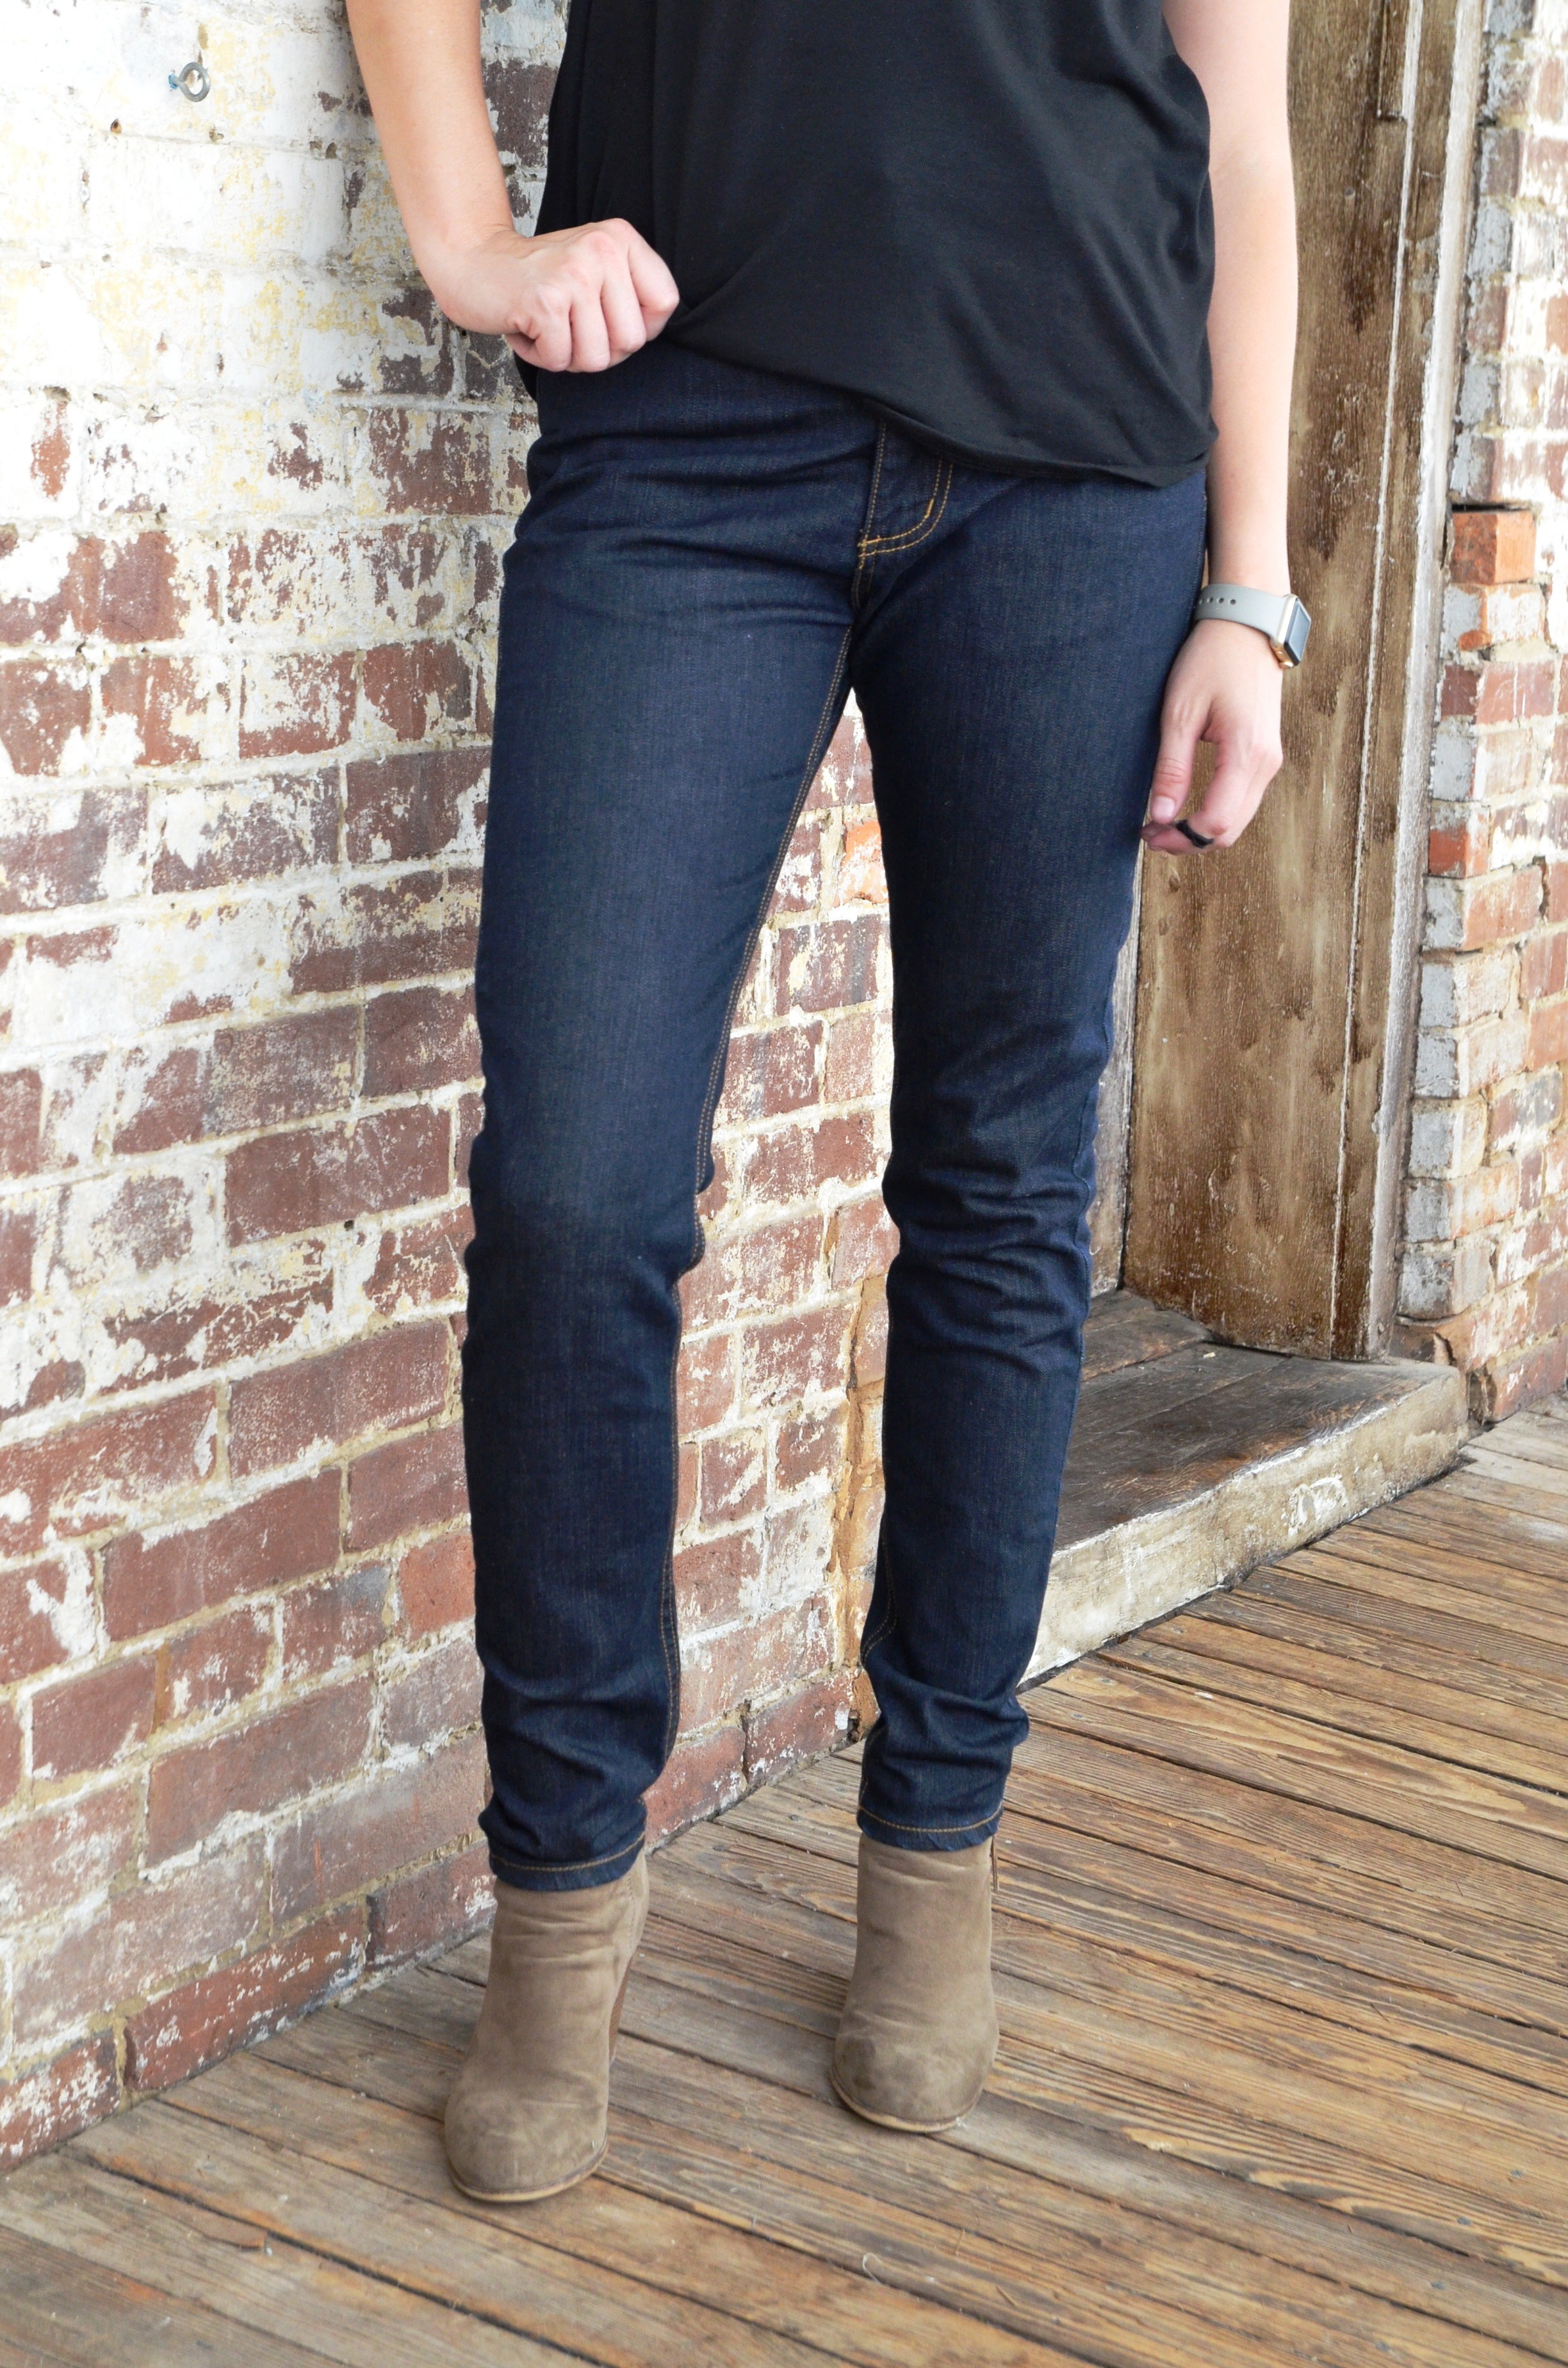 Diamond Gusset tapered leg jeans wit a semi-skinny fit in the legs